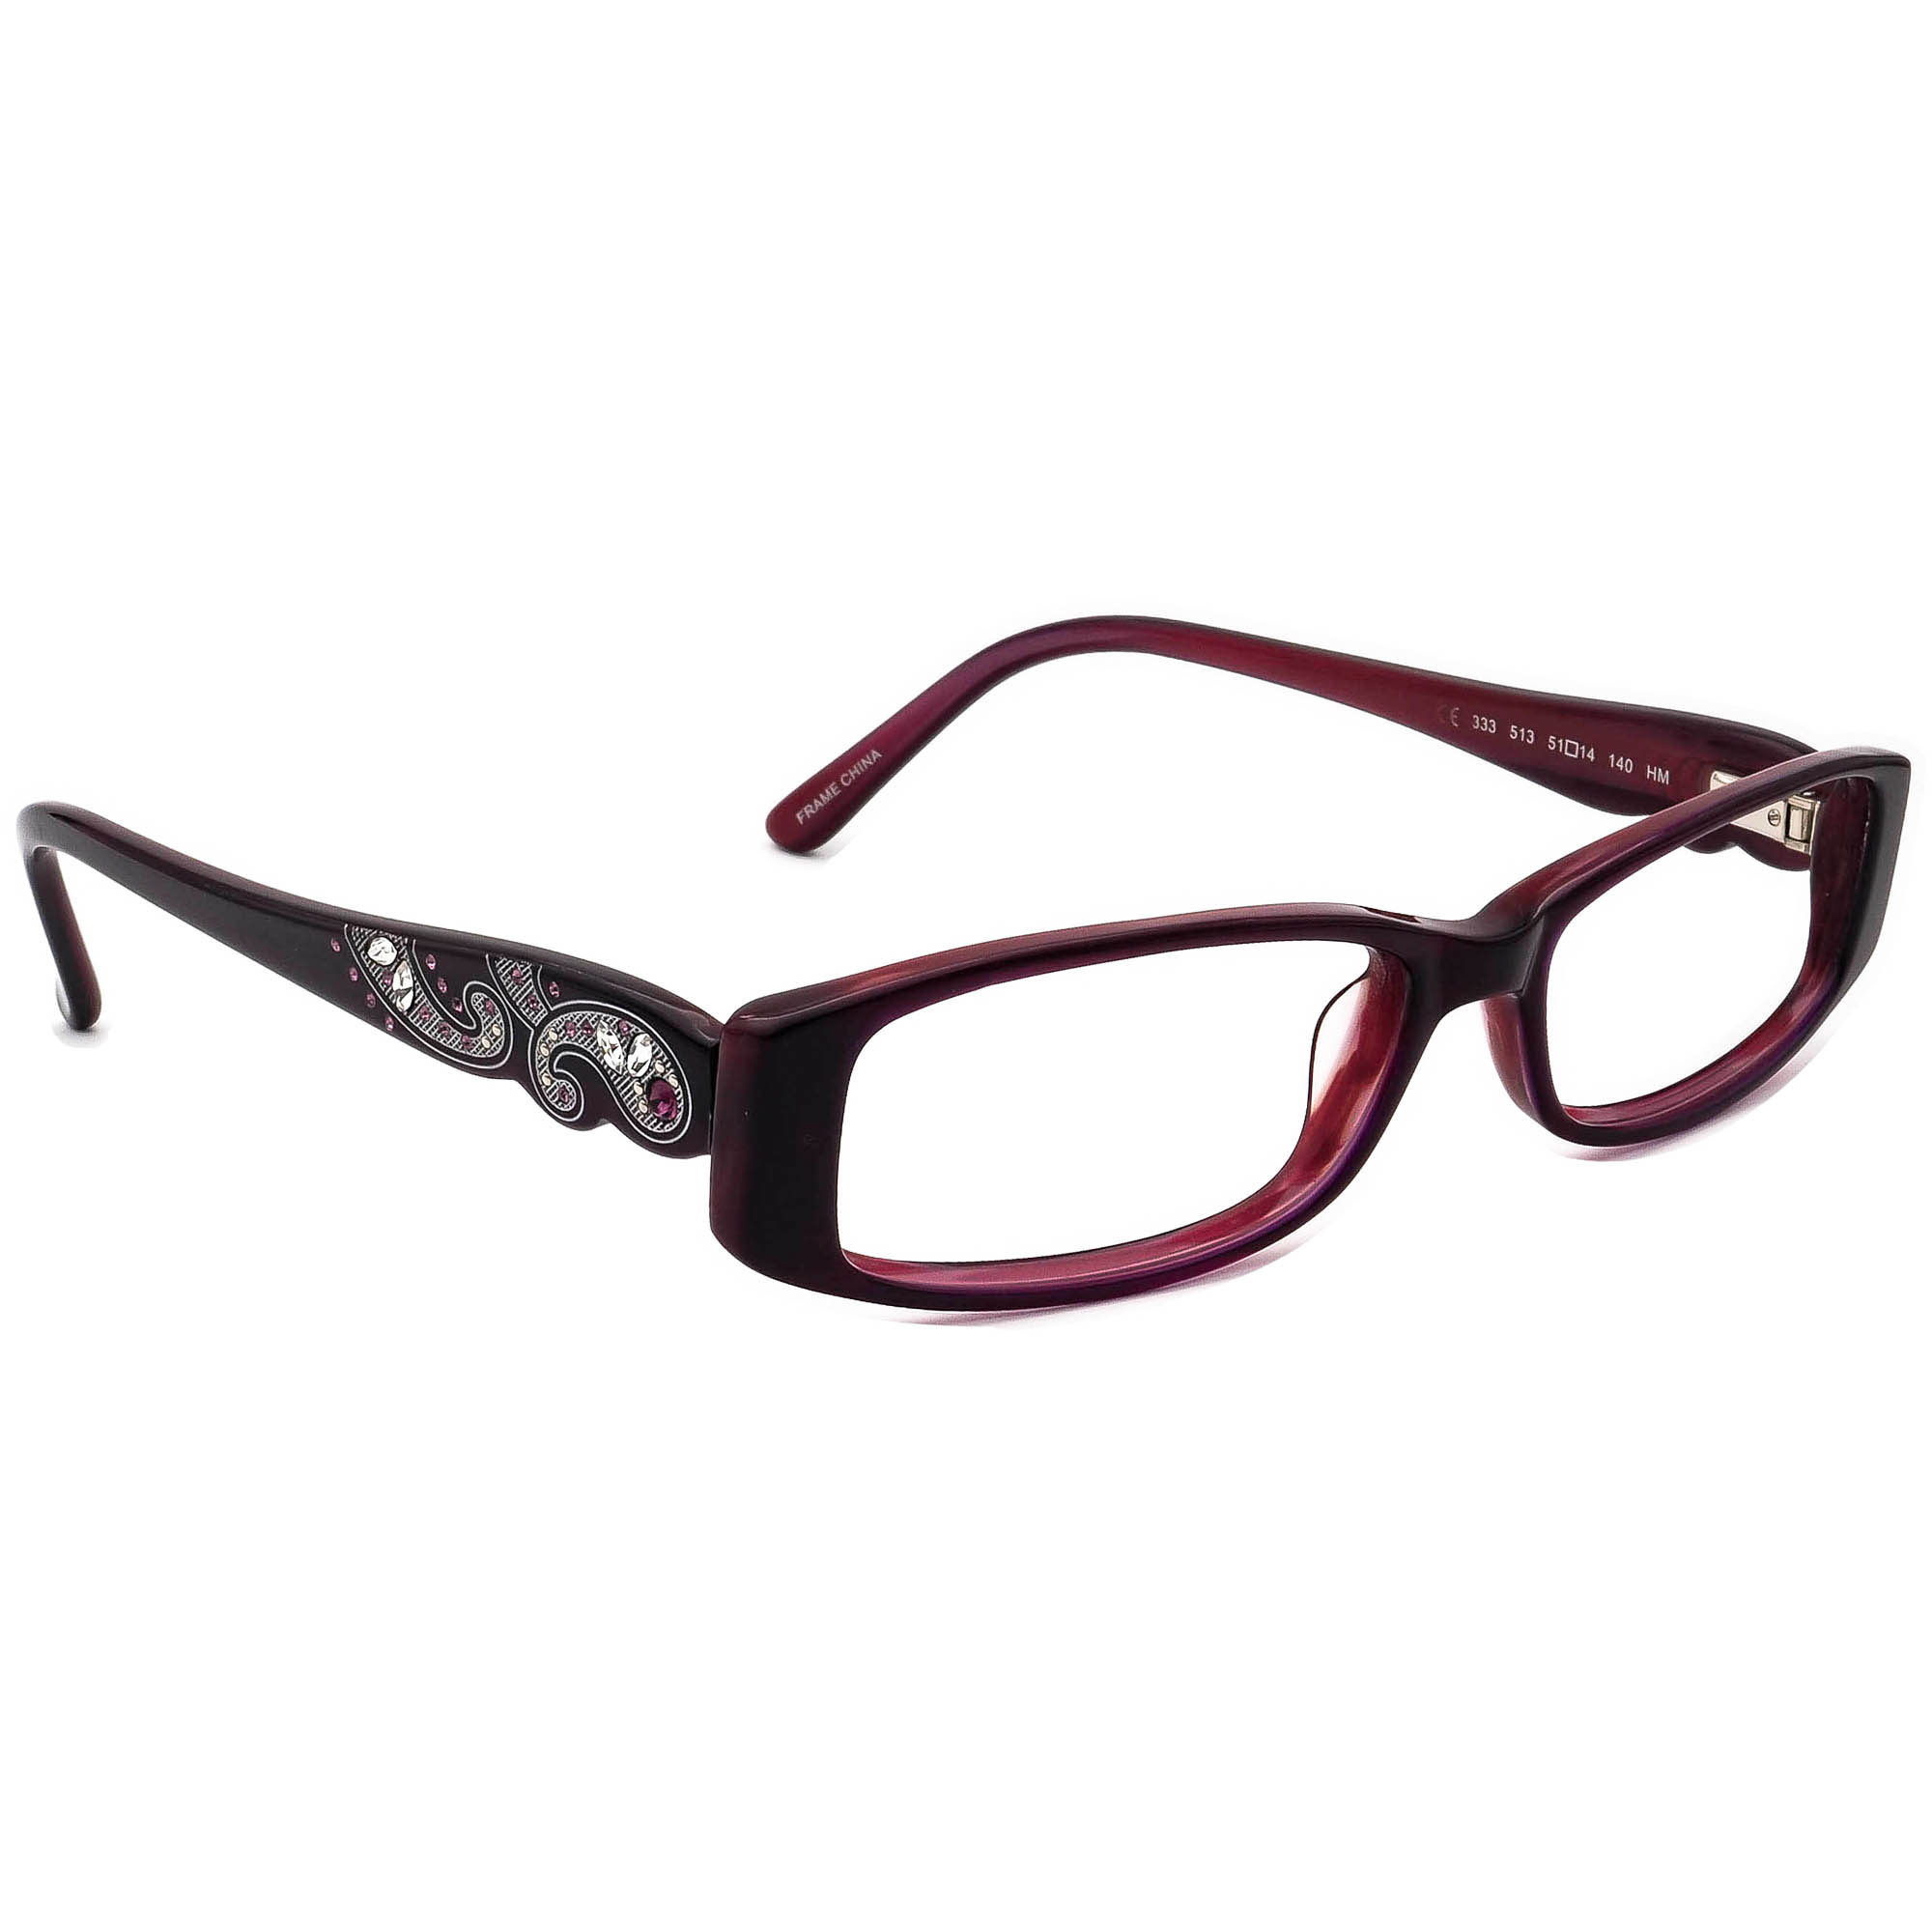 Allure Eyewear 333 513 Made With Swarovski Elements Eyeglasses